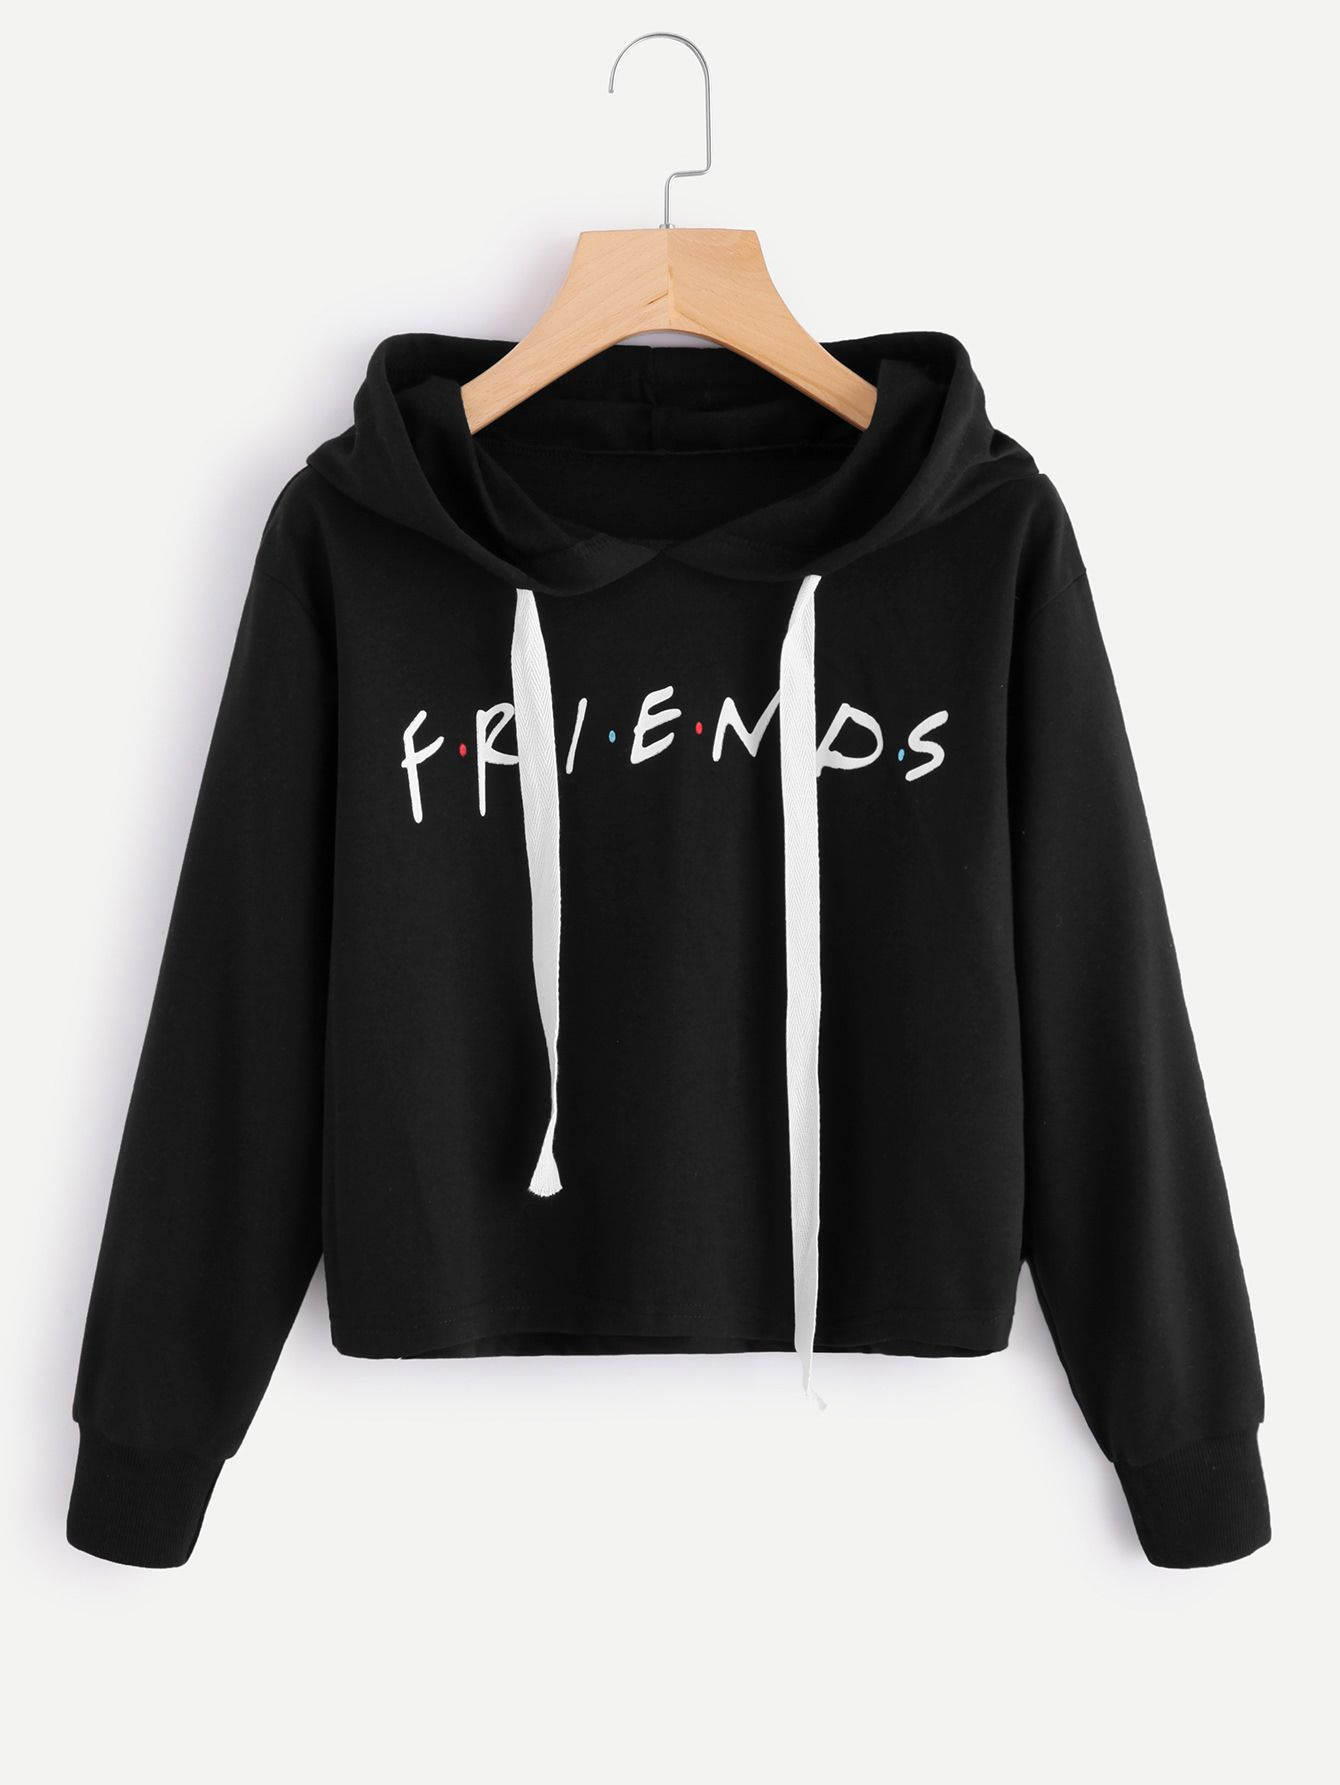 b861542480 Shop Friends Print Drop Shoulder Raw Hem Hoodie online. SheIn offers  Friends Print Drop Shoulder Raw Hem Hoodie & more to fit your fashionable  needs.